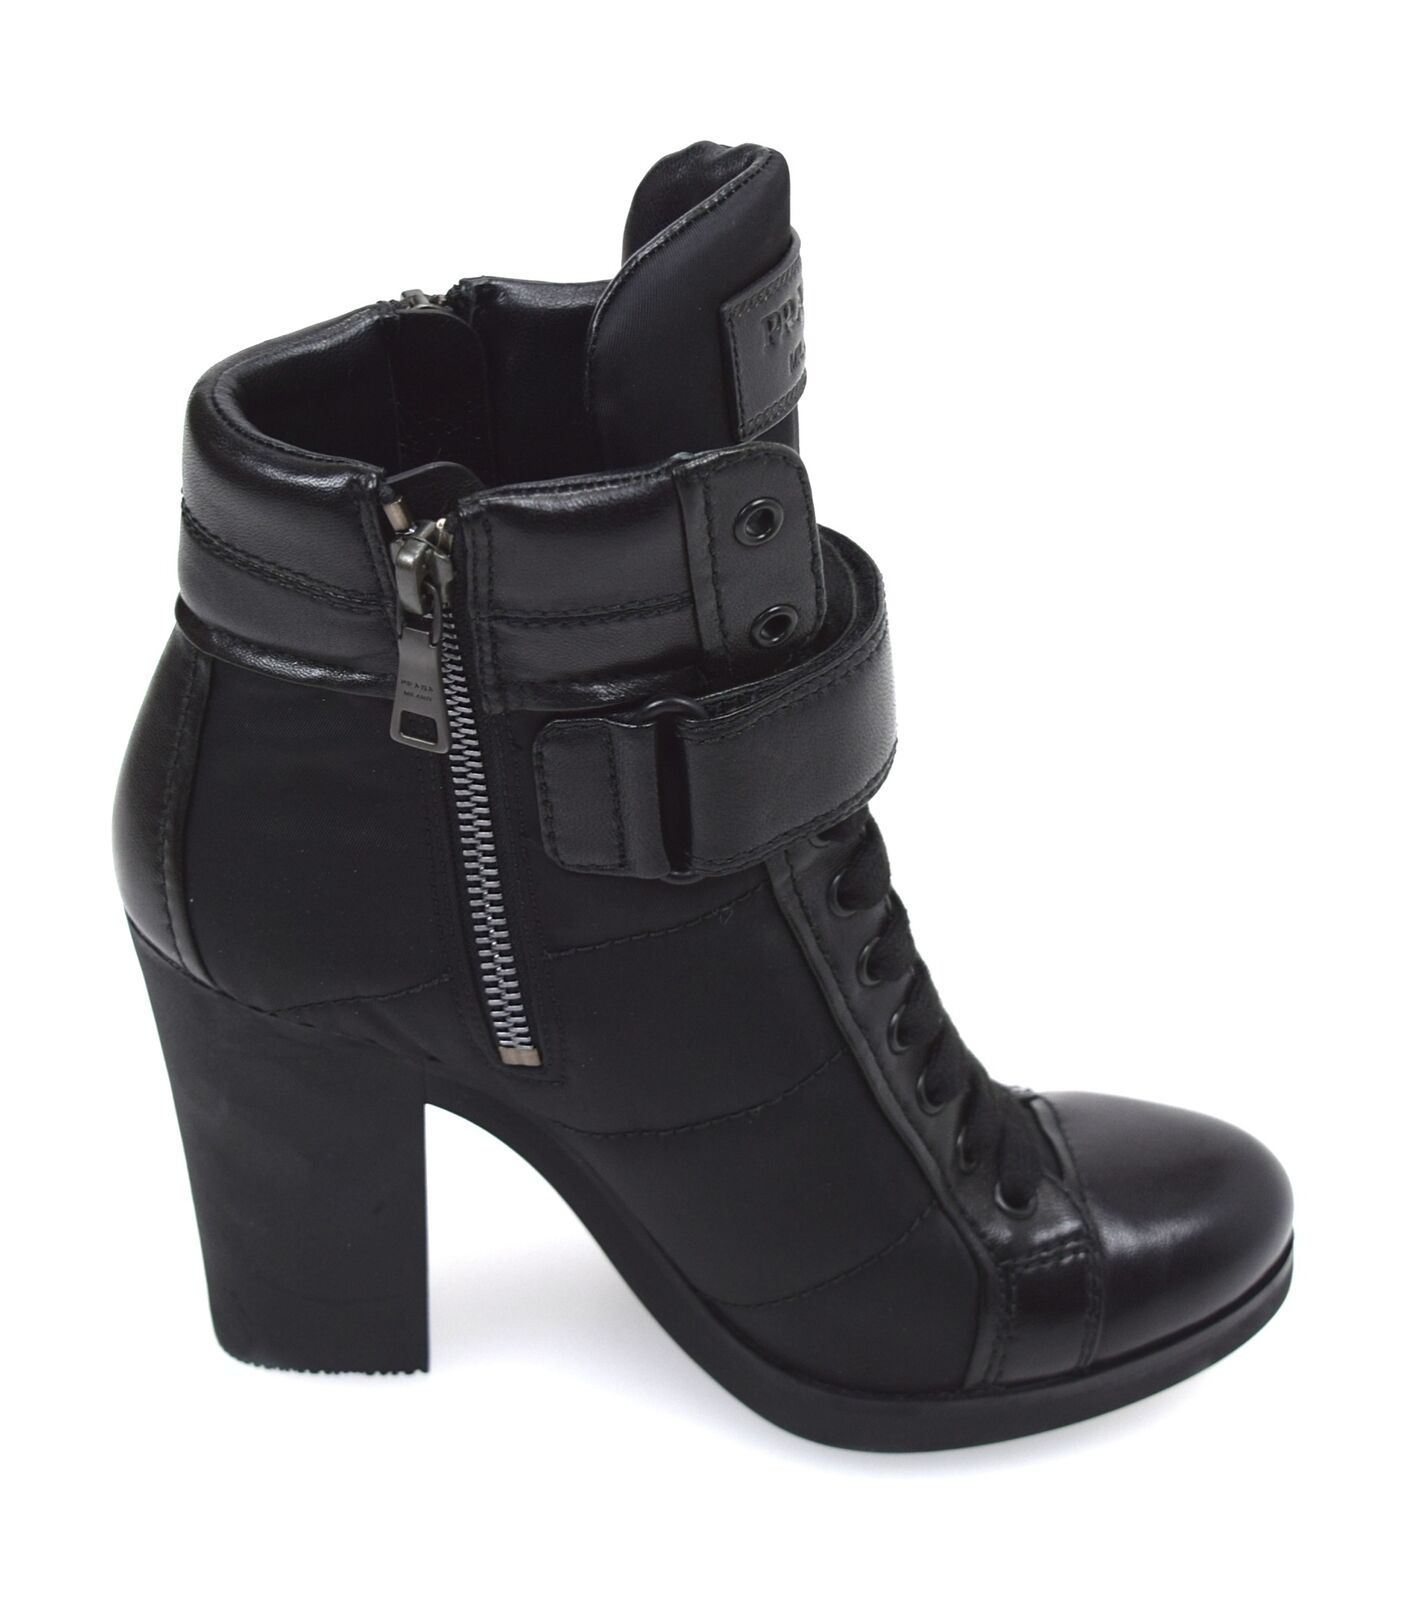 PRADA WOMAN ANKLE Stiefel StiefelIES WINTER WINTER WINTER CASUAL FREE TIME LEATHER CODE 3TP020 5c4025